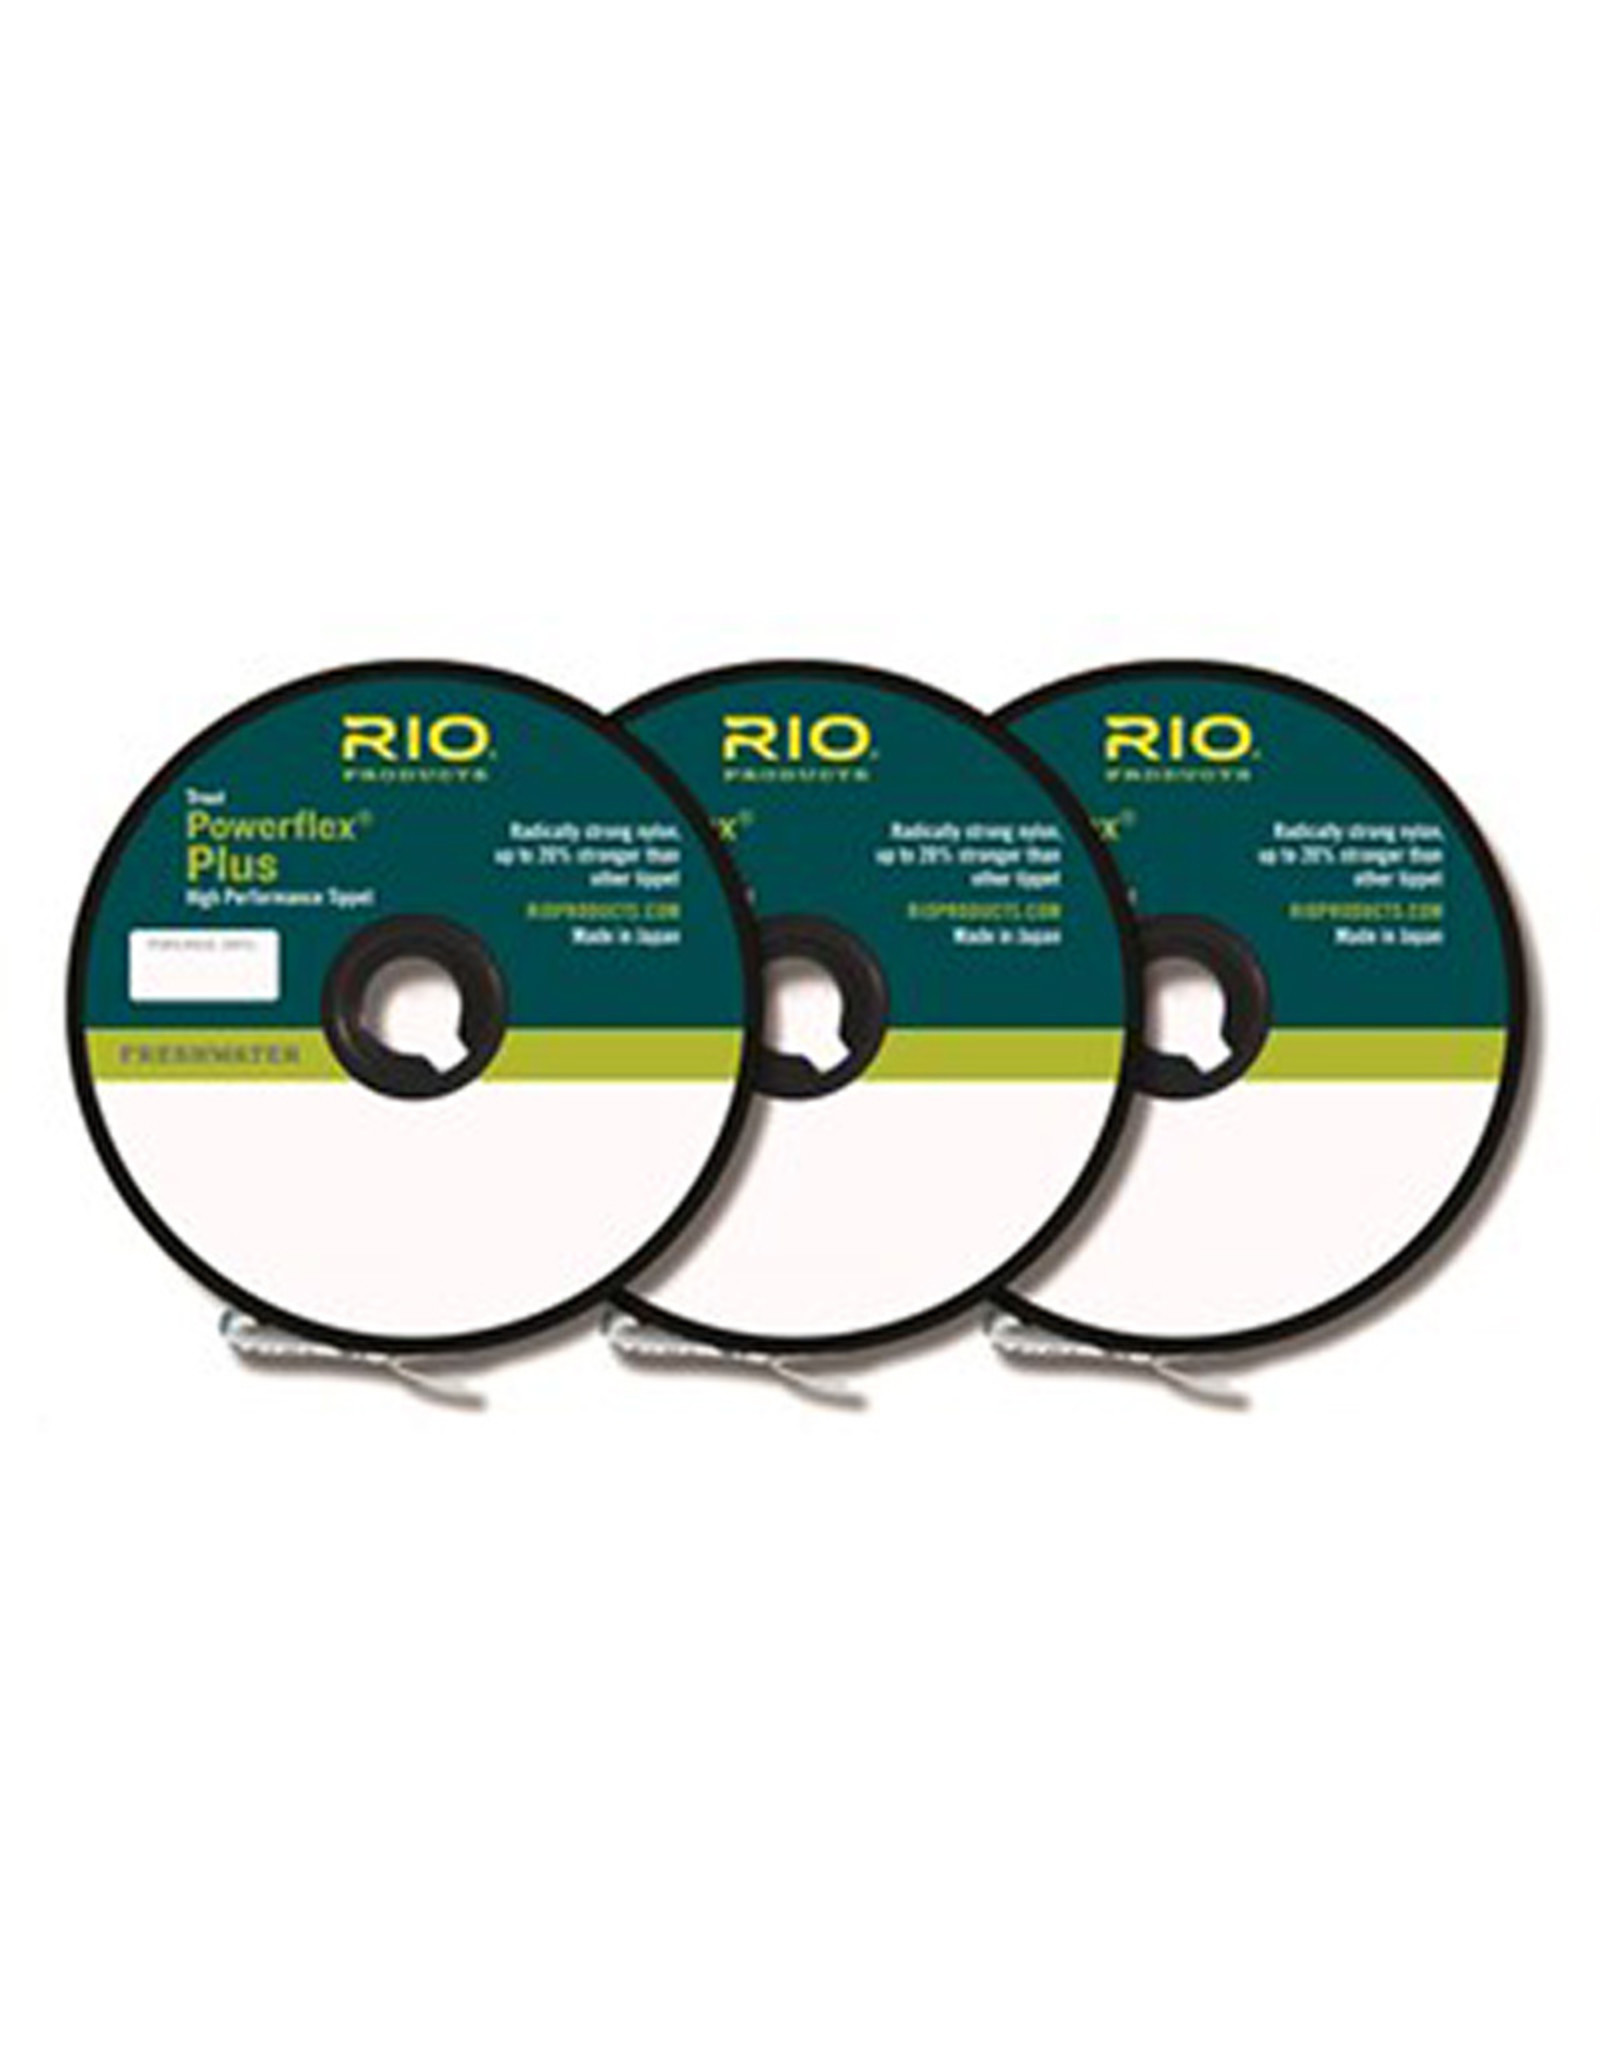 RIO Products Powerflex Plus Tippet: 3 Pack